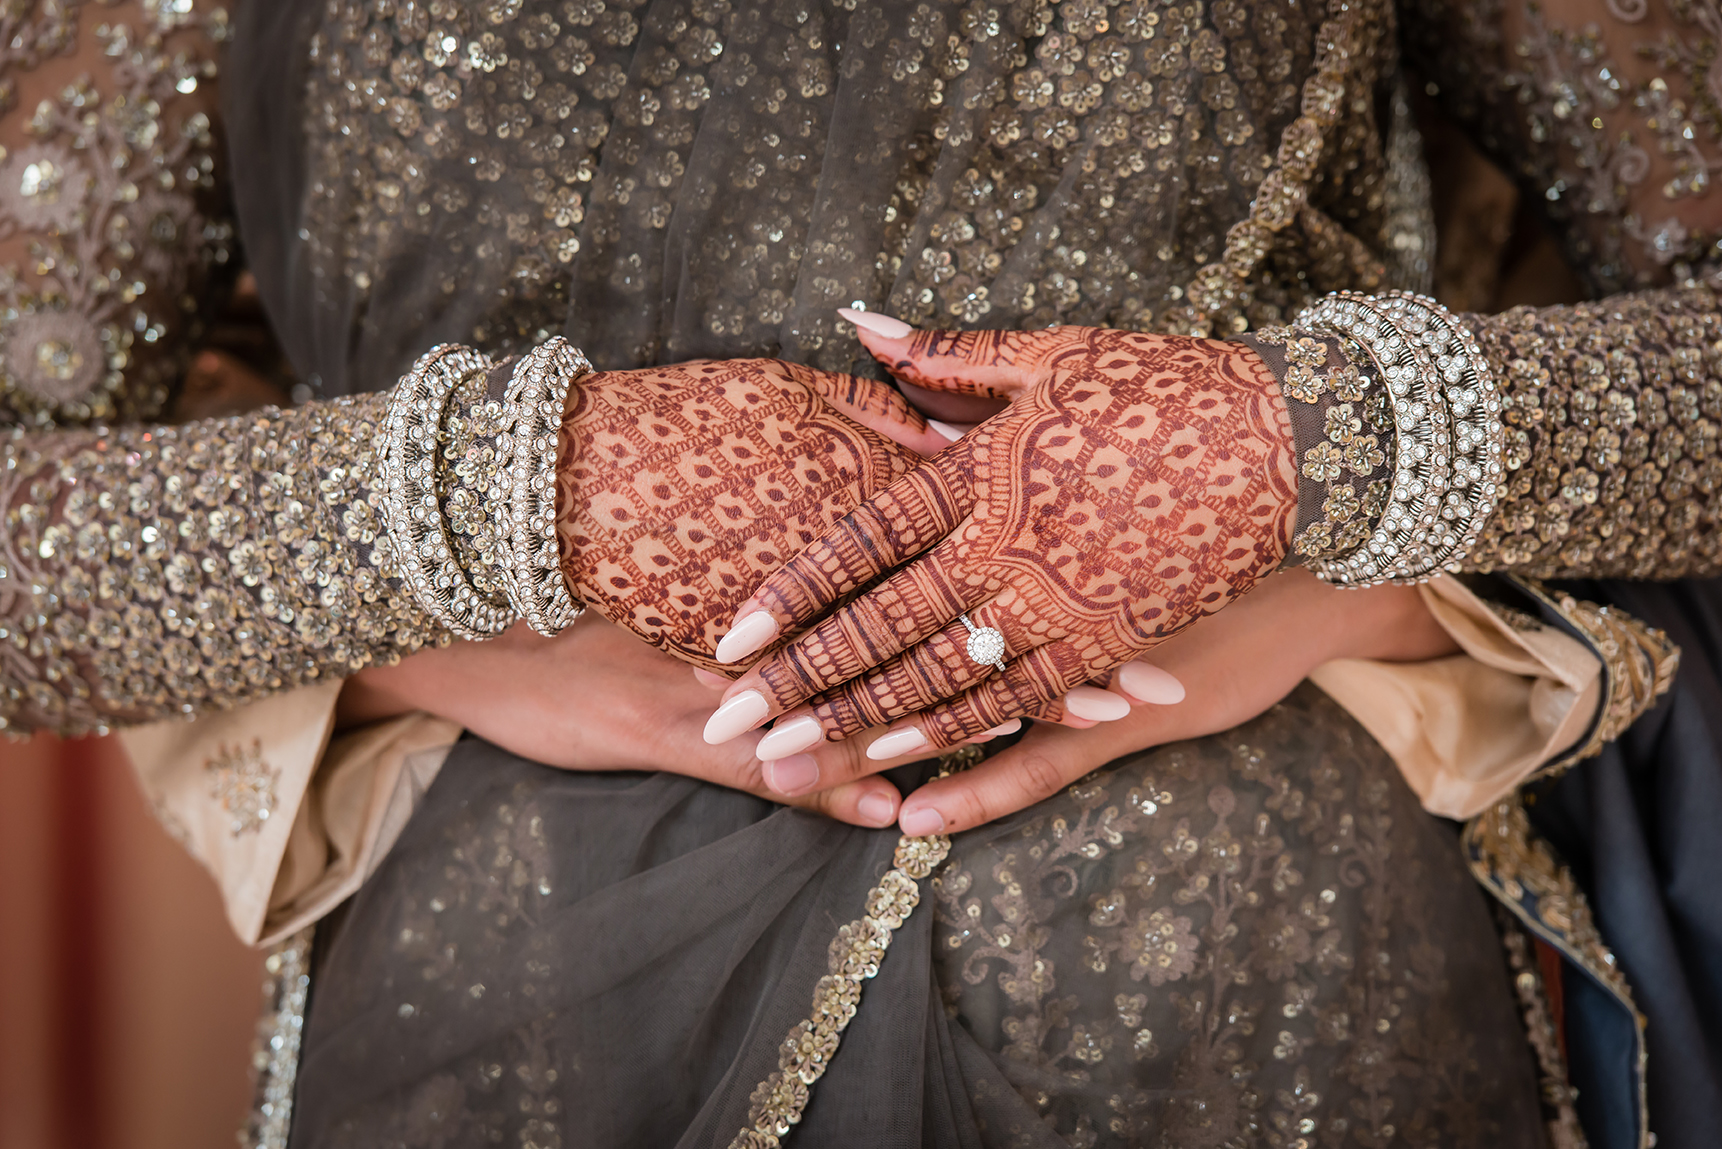 south_asian_wedding_photography_dhoom_studio_new_york1 SOUTH ASIAN WEDDINGS